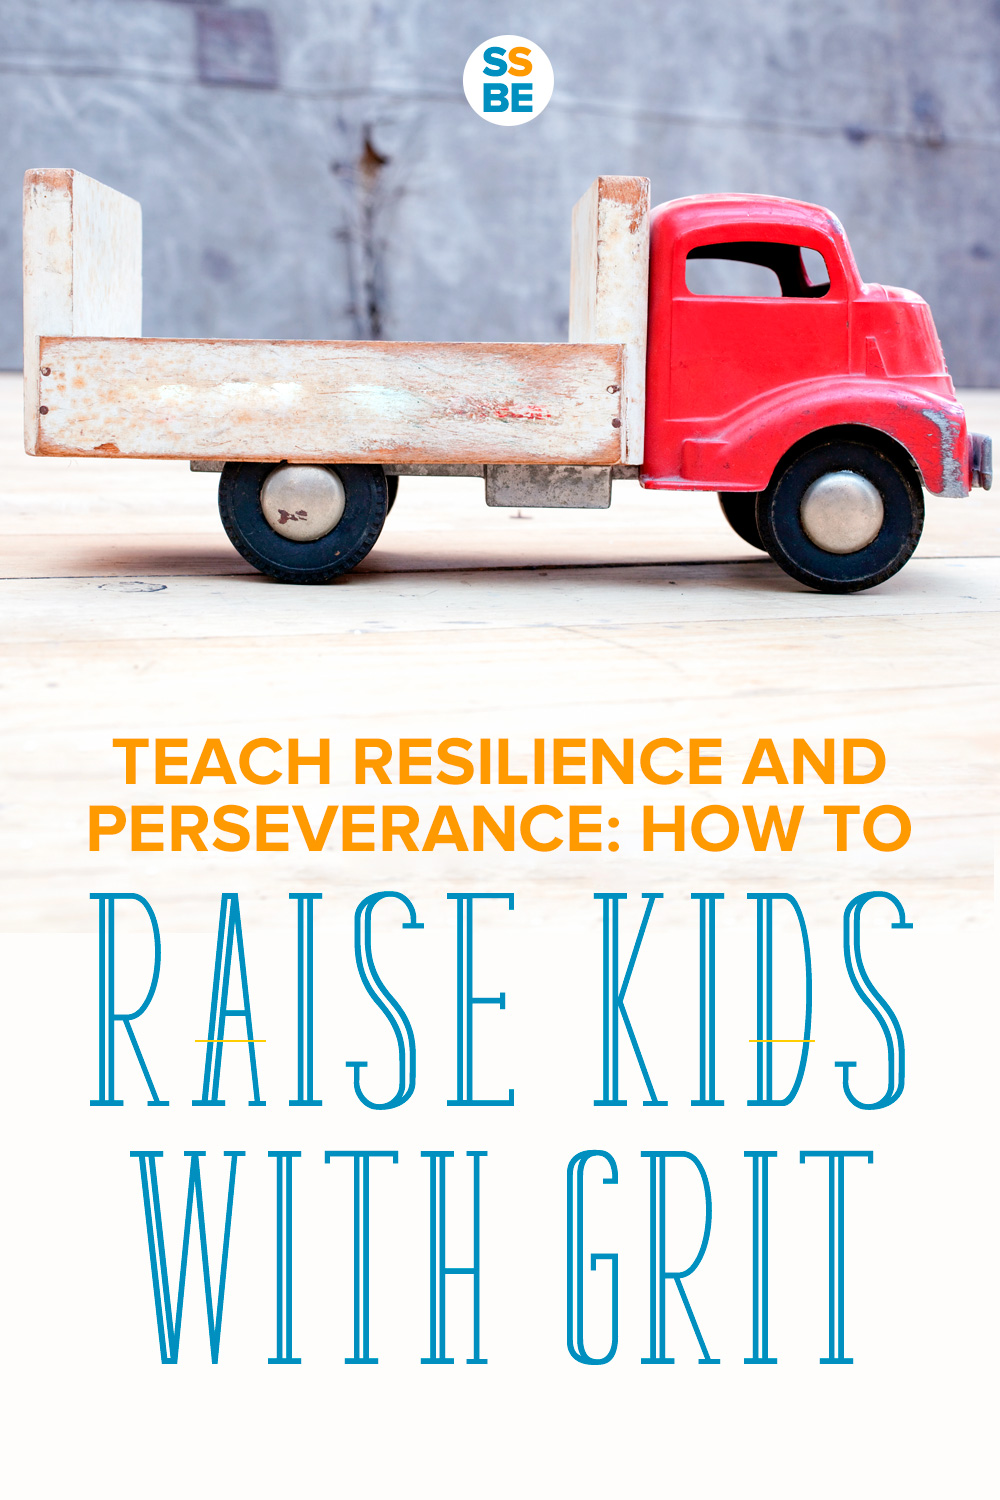 Grit helps children push on through. Find out how to raise kids with grit—and increase their chances for success by teaching resilience and perseverance.